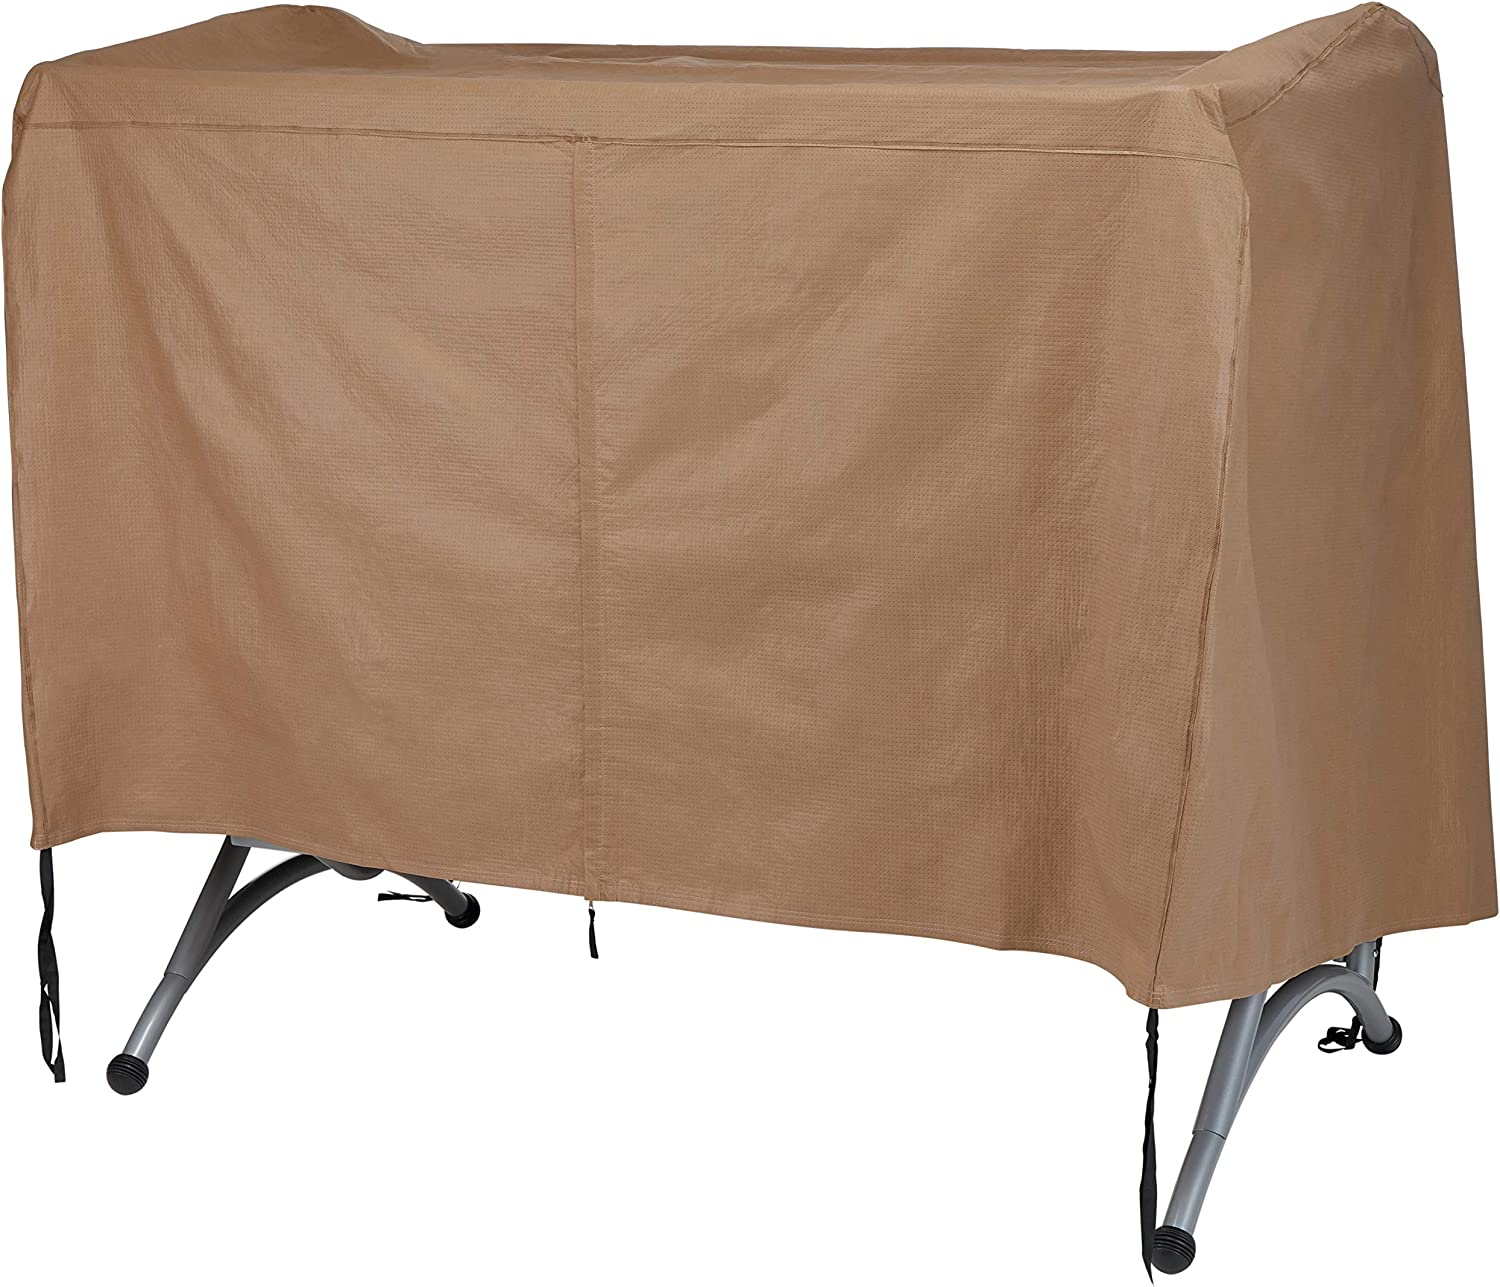 Duck Covers Essential Water-Resistant 80 Inch Canopy Swing Cover